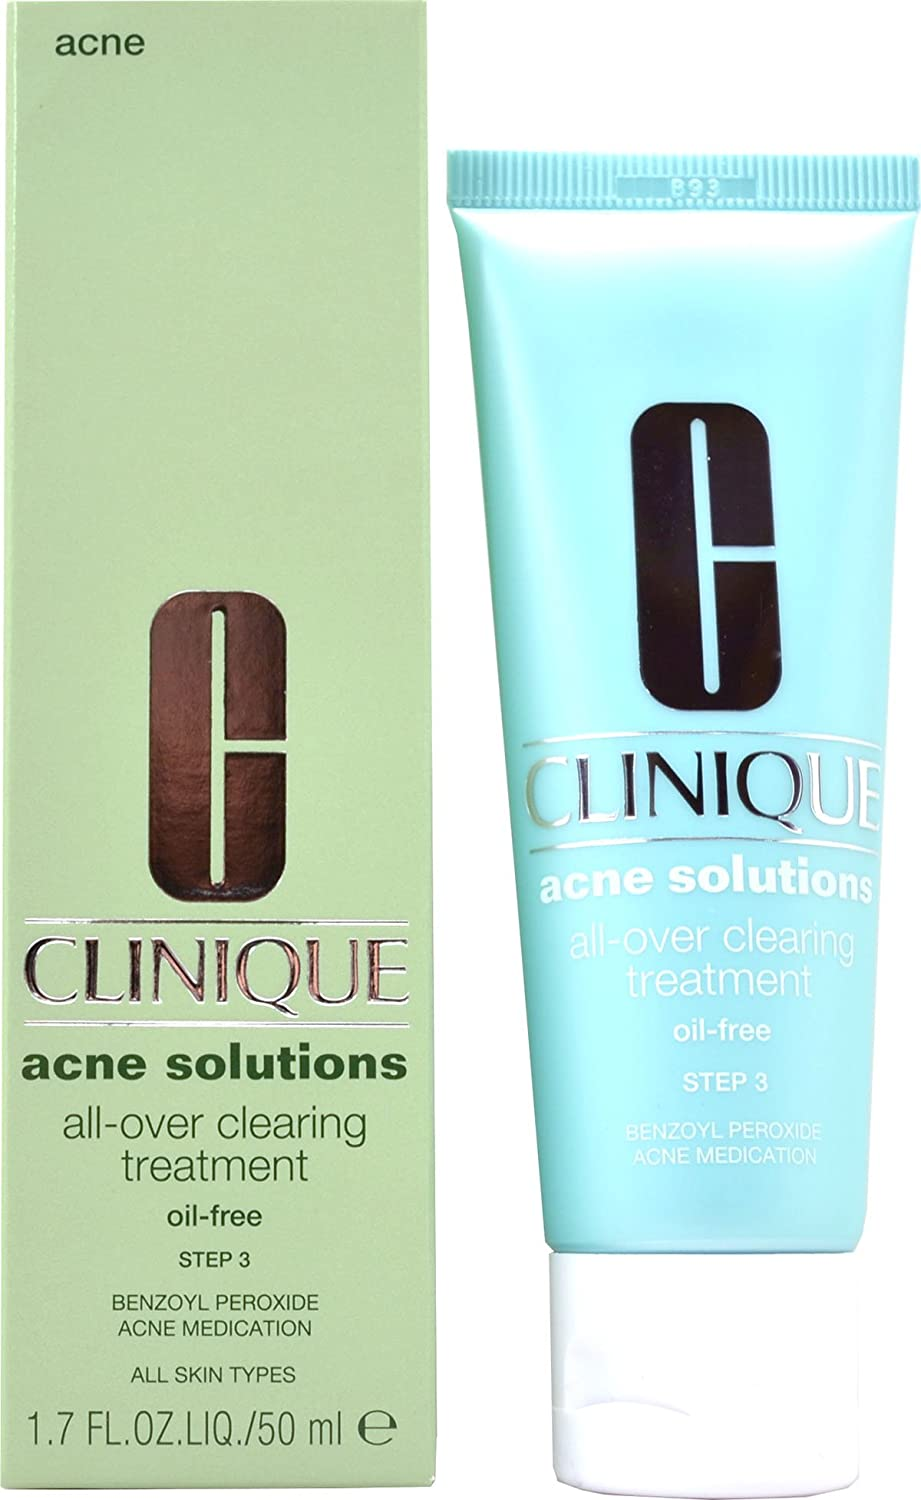 Acne Solutions Cleansing Foam by Clinique #16